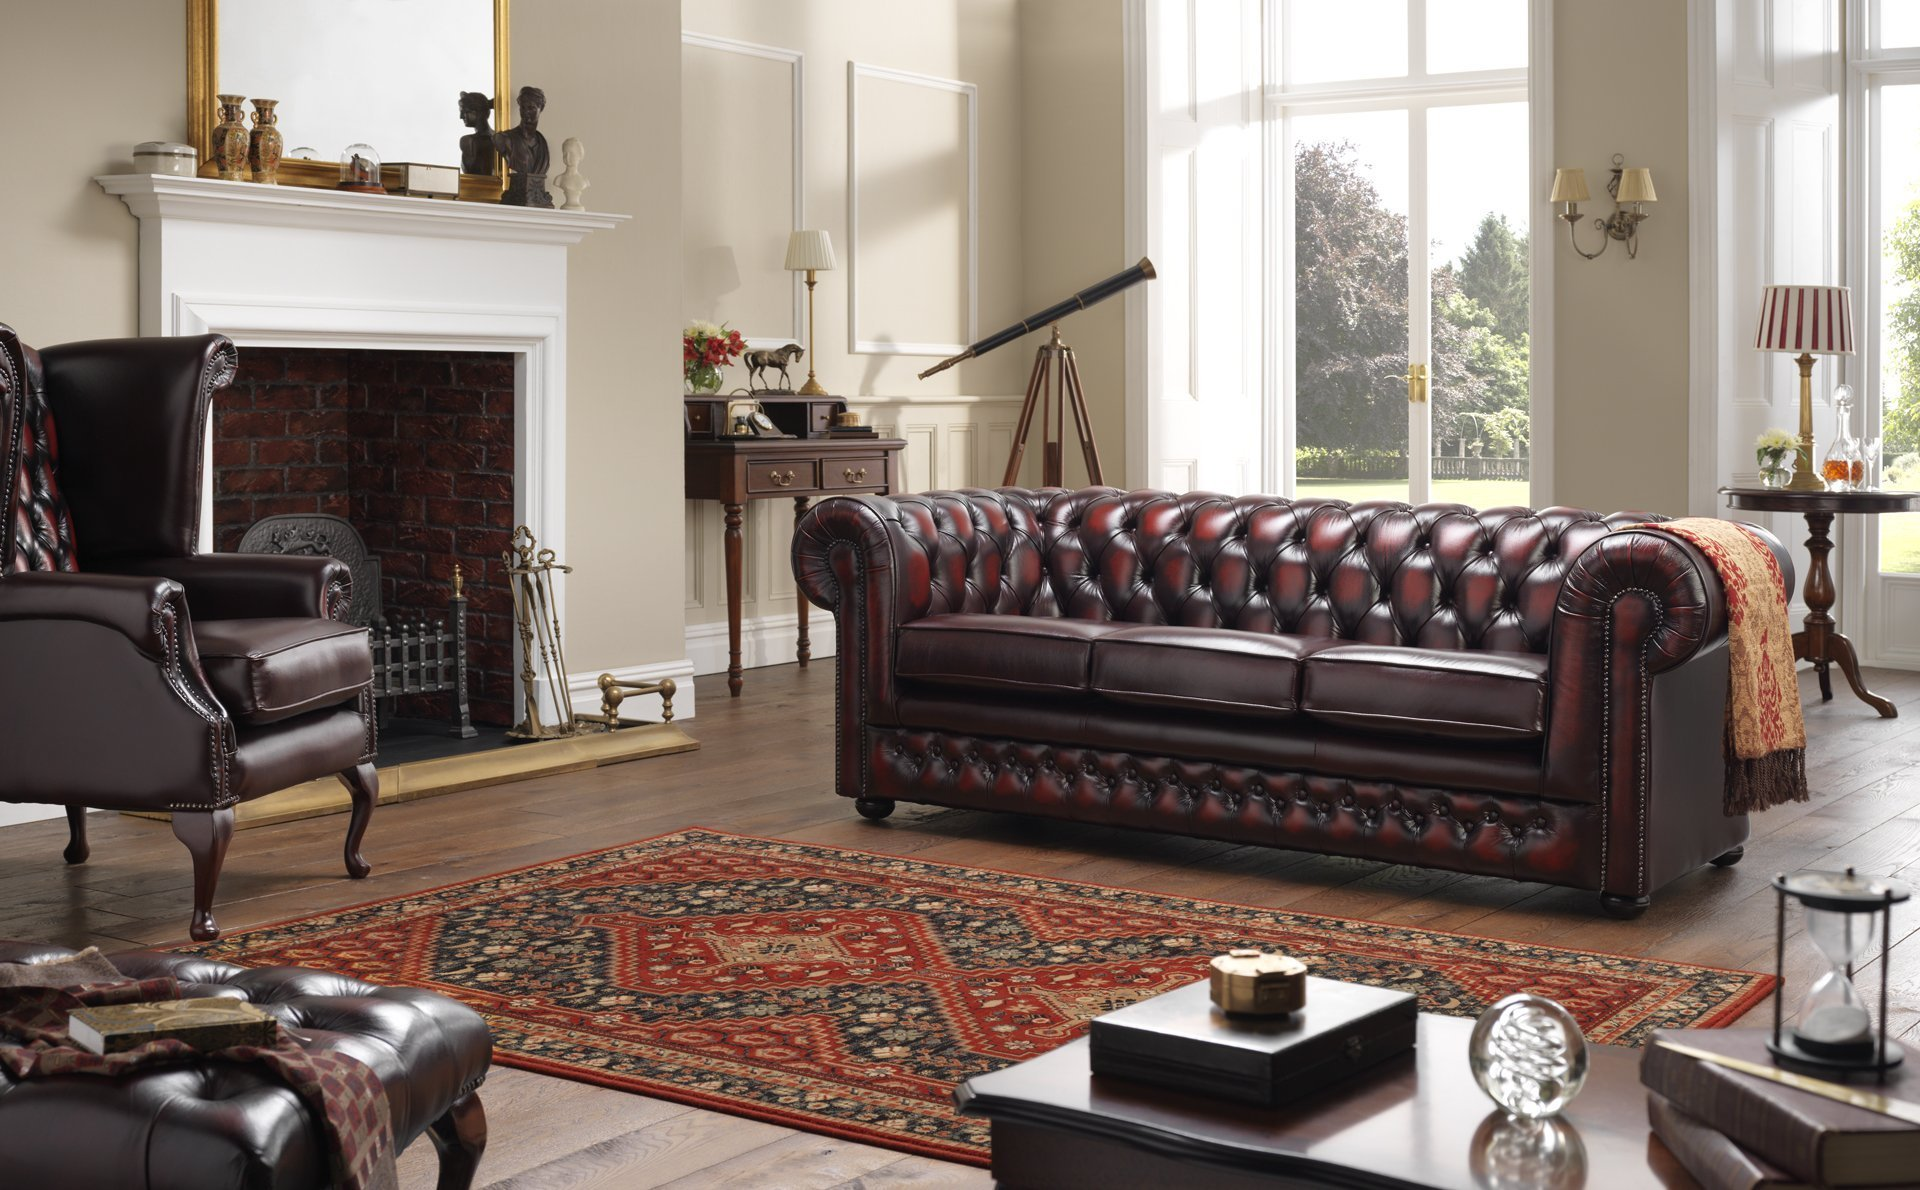 best sofas on the high street t cushion sofa chesterfield 3 seater leather in a traditional living